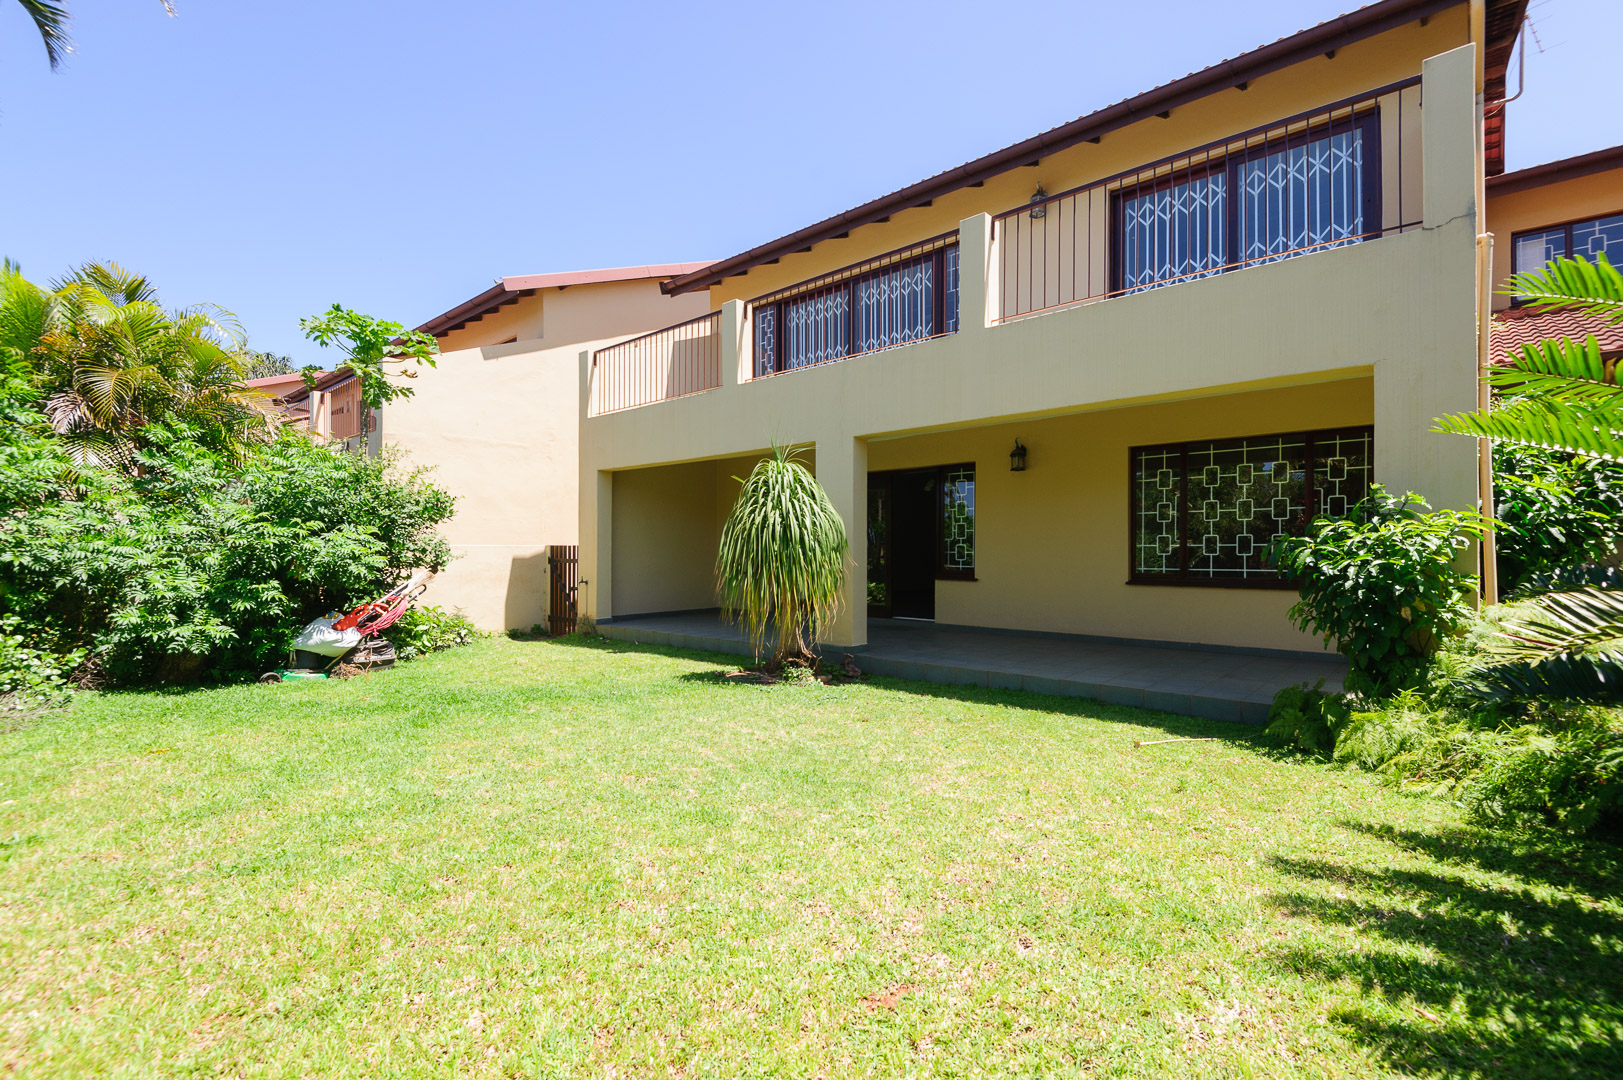 3 Bedroom Townhouse for sale in Ballito ENT0080433 : photo#0